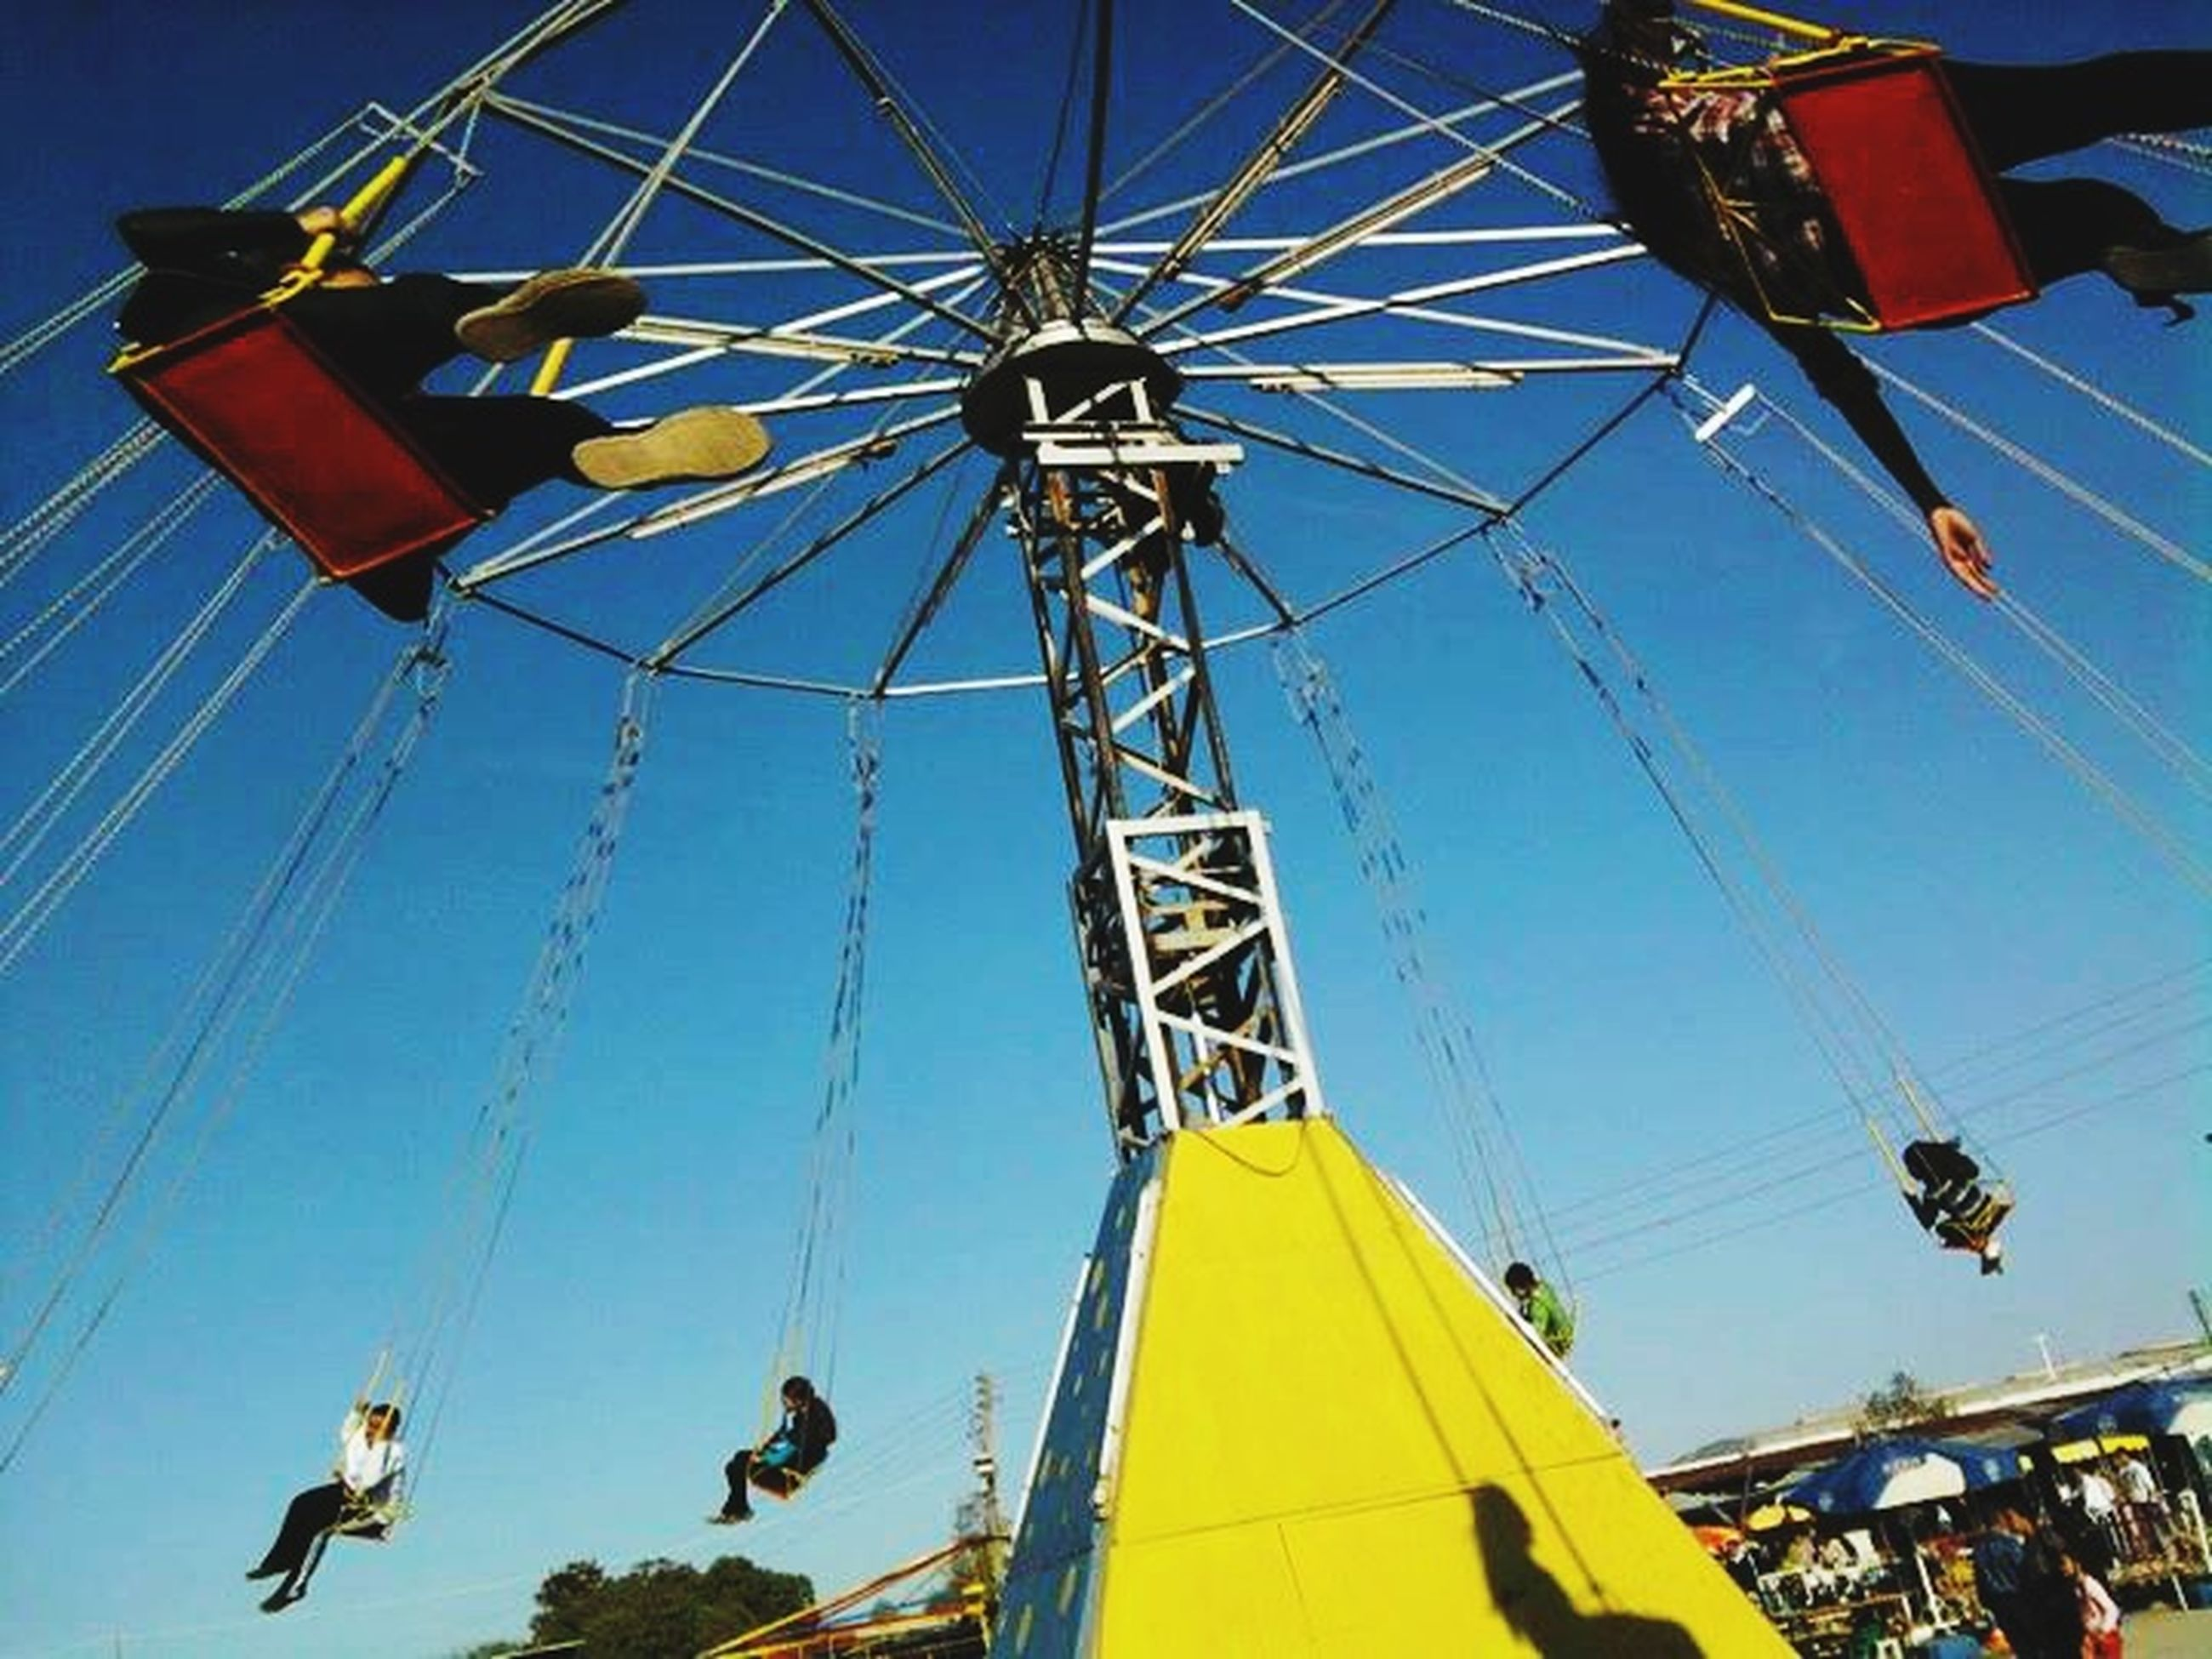 low angle view, amusement park ride, amusement park, blue, sky, multi colored, fun, clear sky, arts culture and entertainment, hanging, day, power line, flag, outdoors, enjoyment, ferris wheel, chain swing ride, no people, cable, leisure activity